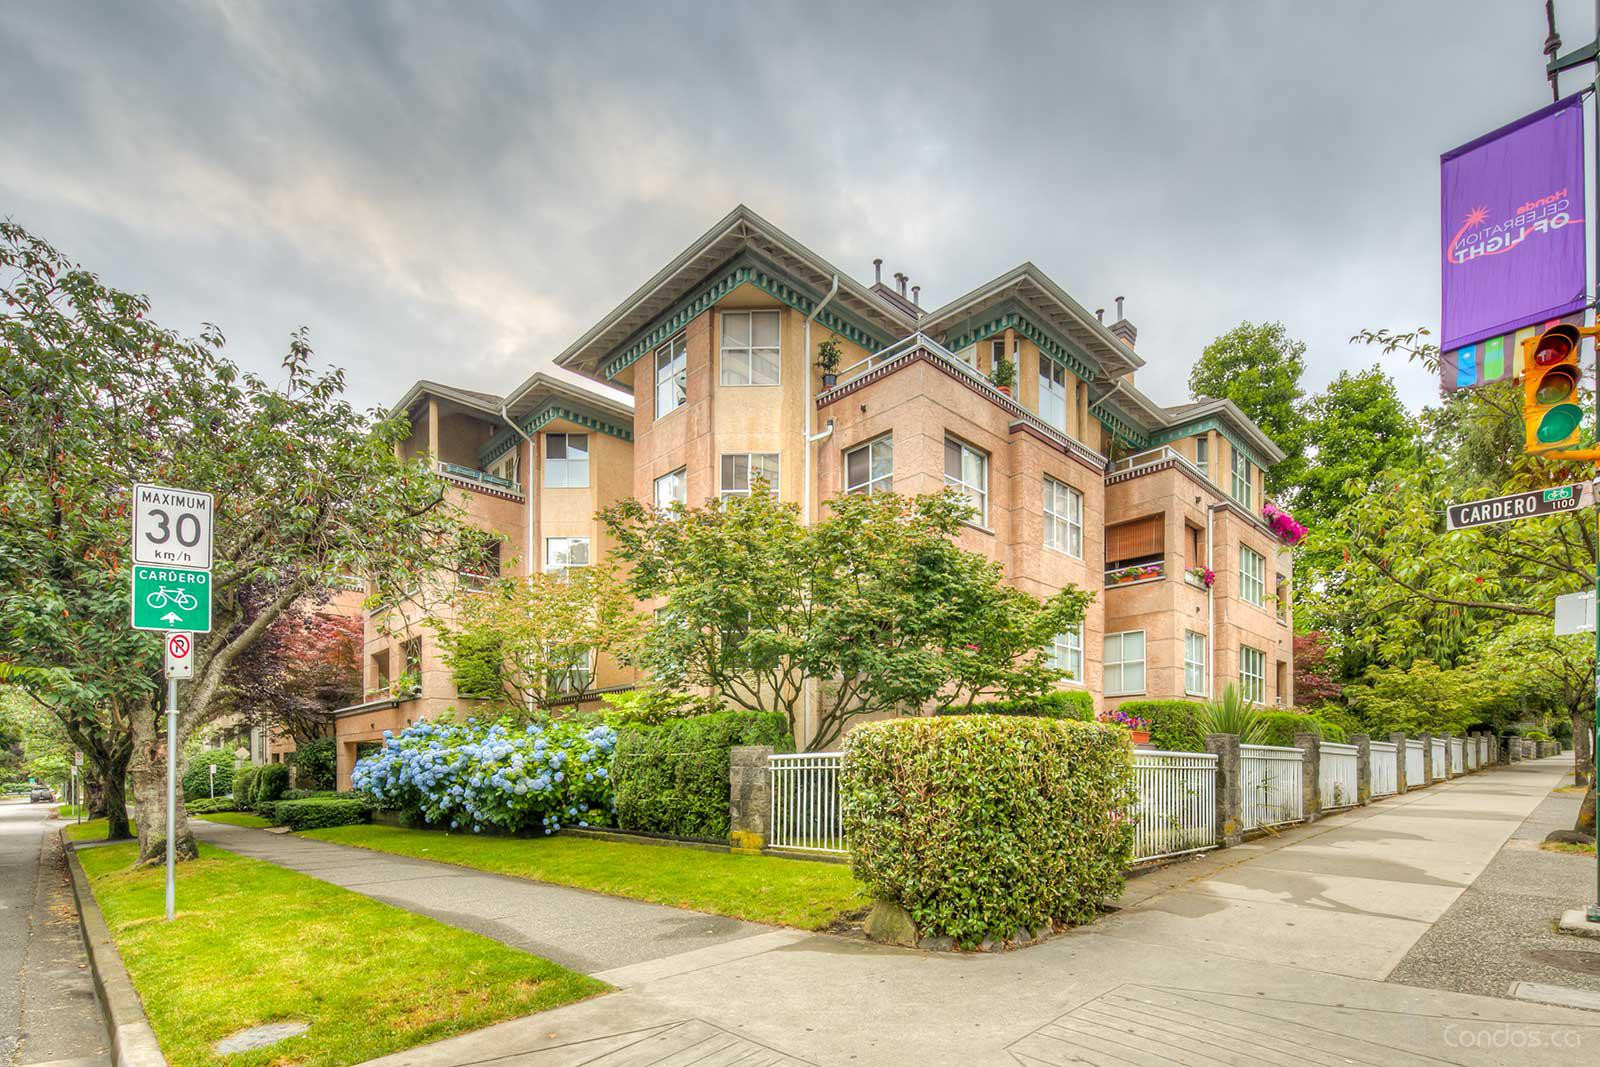 The Hampstead at 1188 Cardero St, Vancouver 1